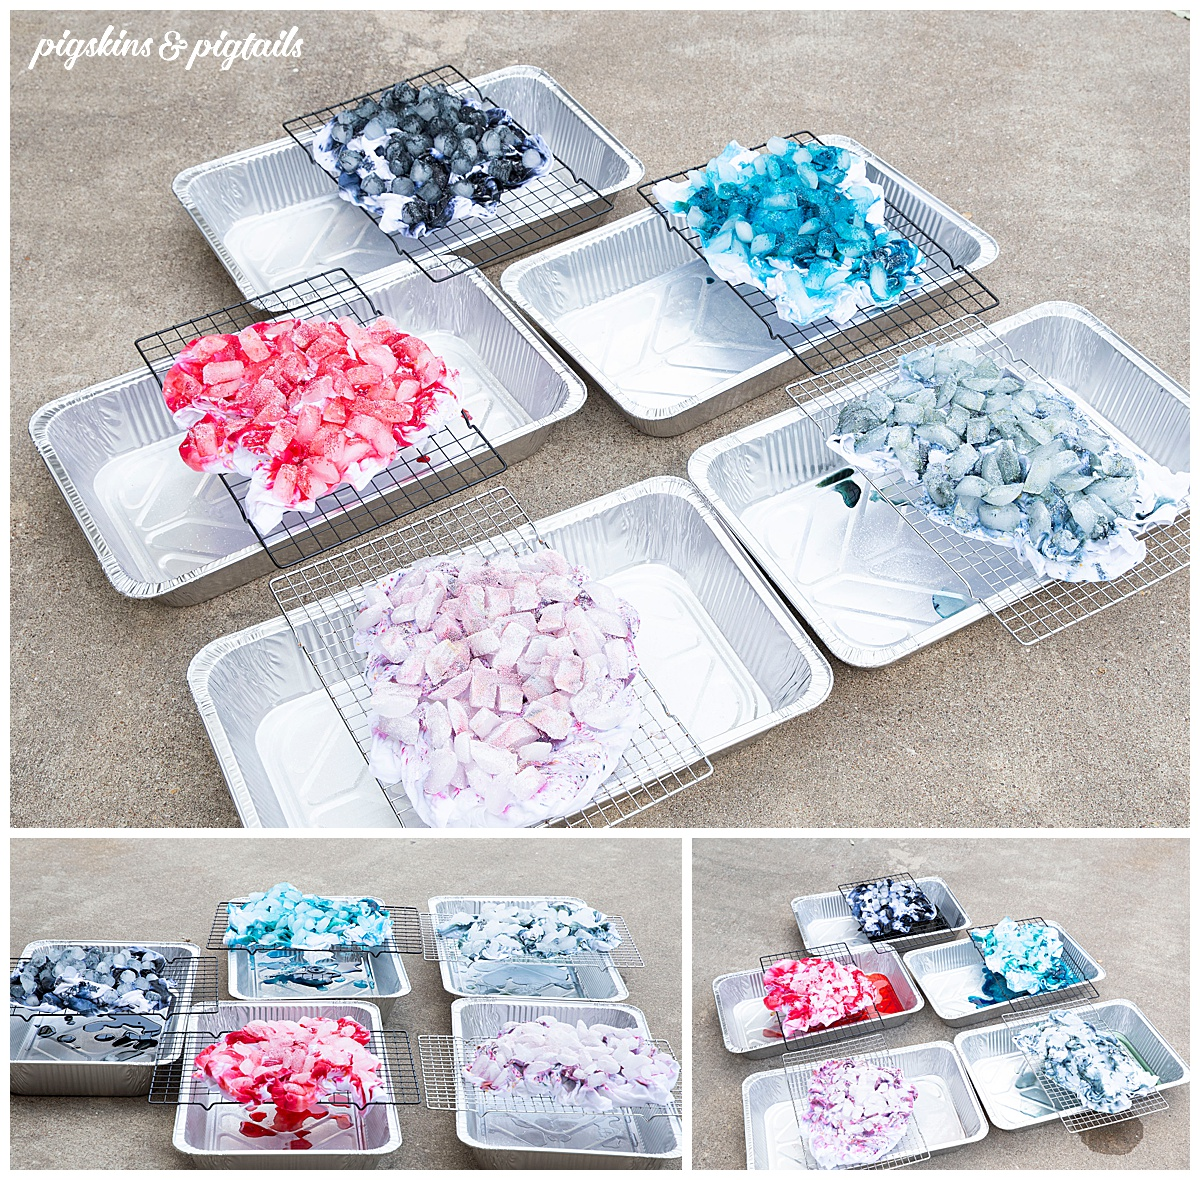 how to ice dye shirt tips